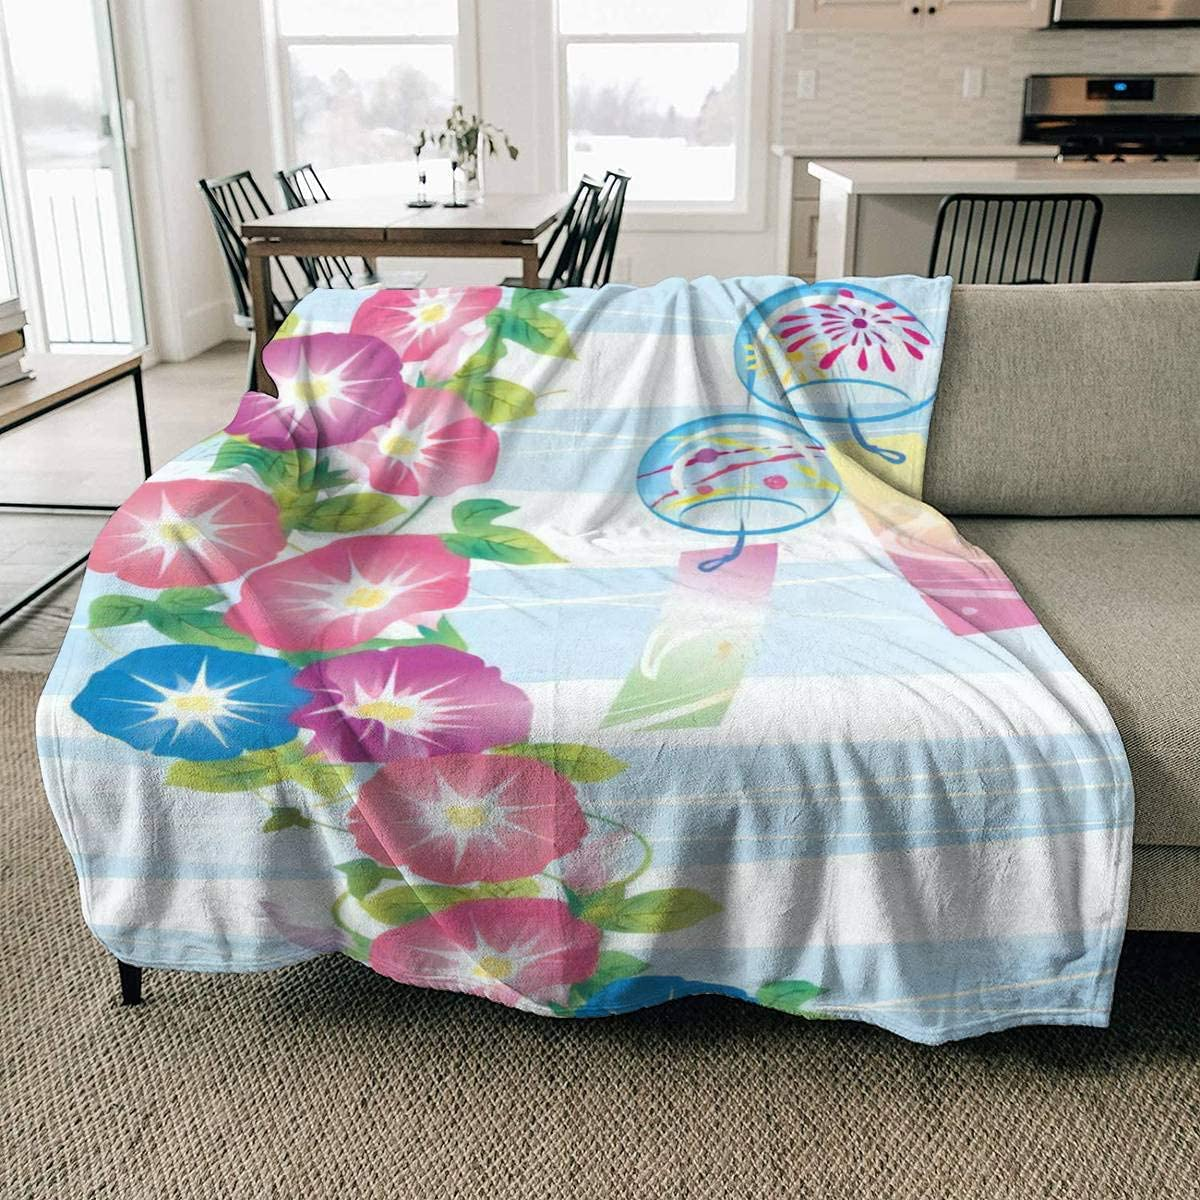 Fleece Super sale period OFFicial mail order limited Blanket It is an Illustration Japanese Summer Morning of